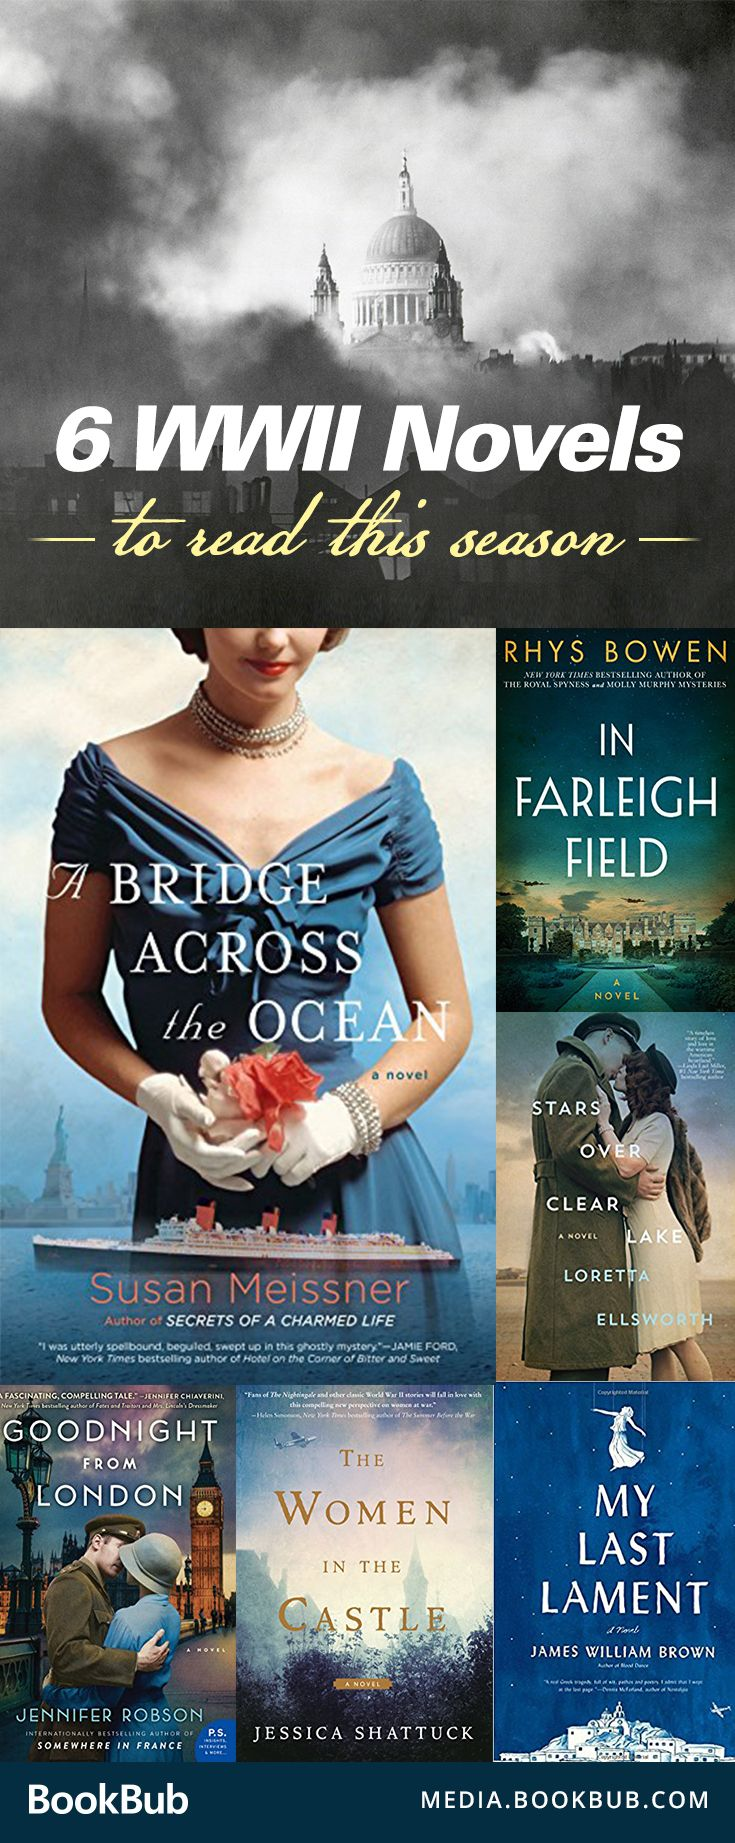 6 World War II novels to read this season. If you love historical fiction, particularly about WWII, these great novels are for you! Featuring a great romance, suspense, and adventure.